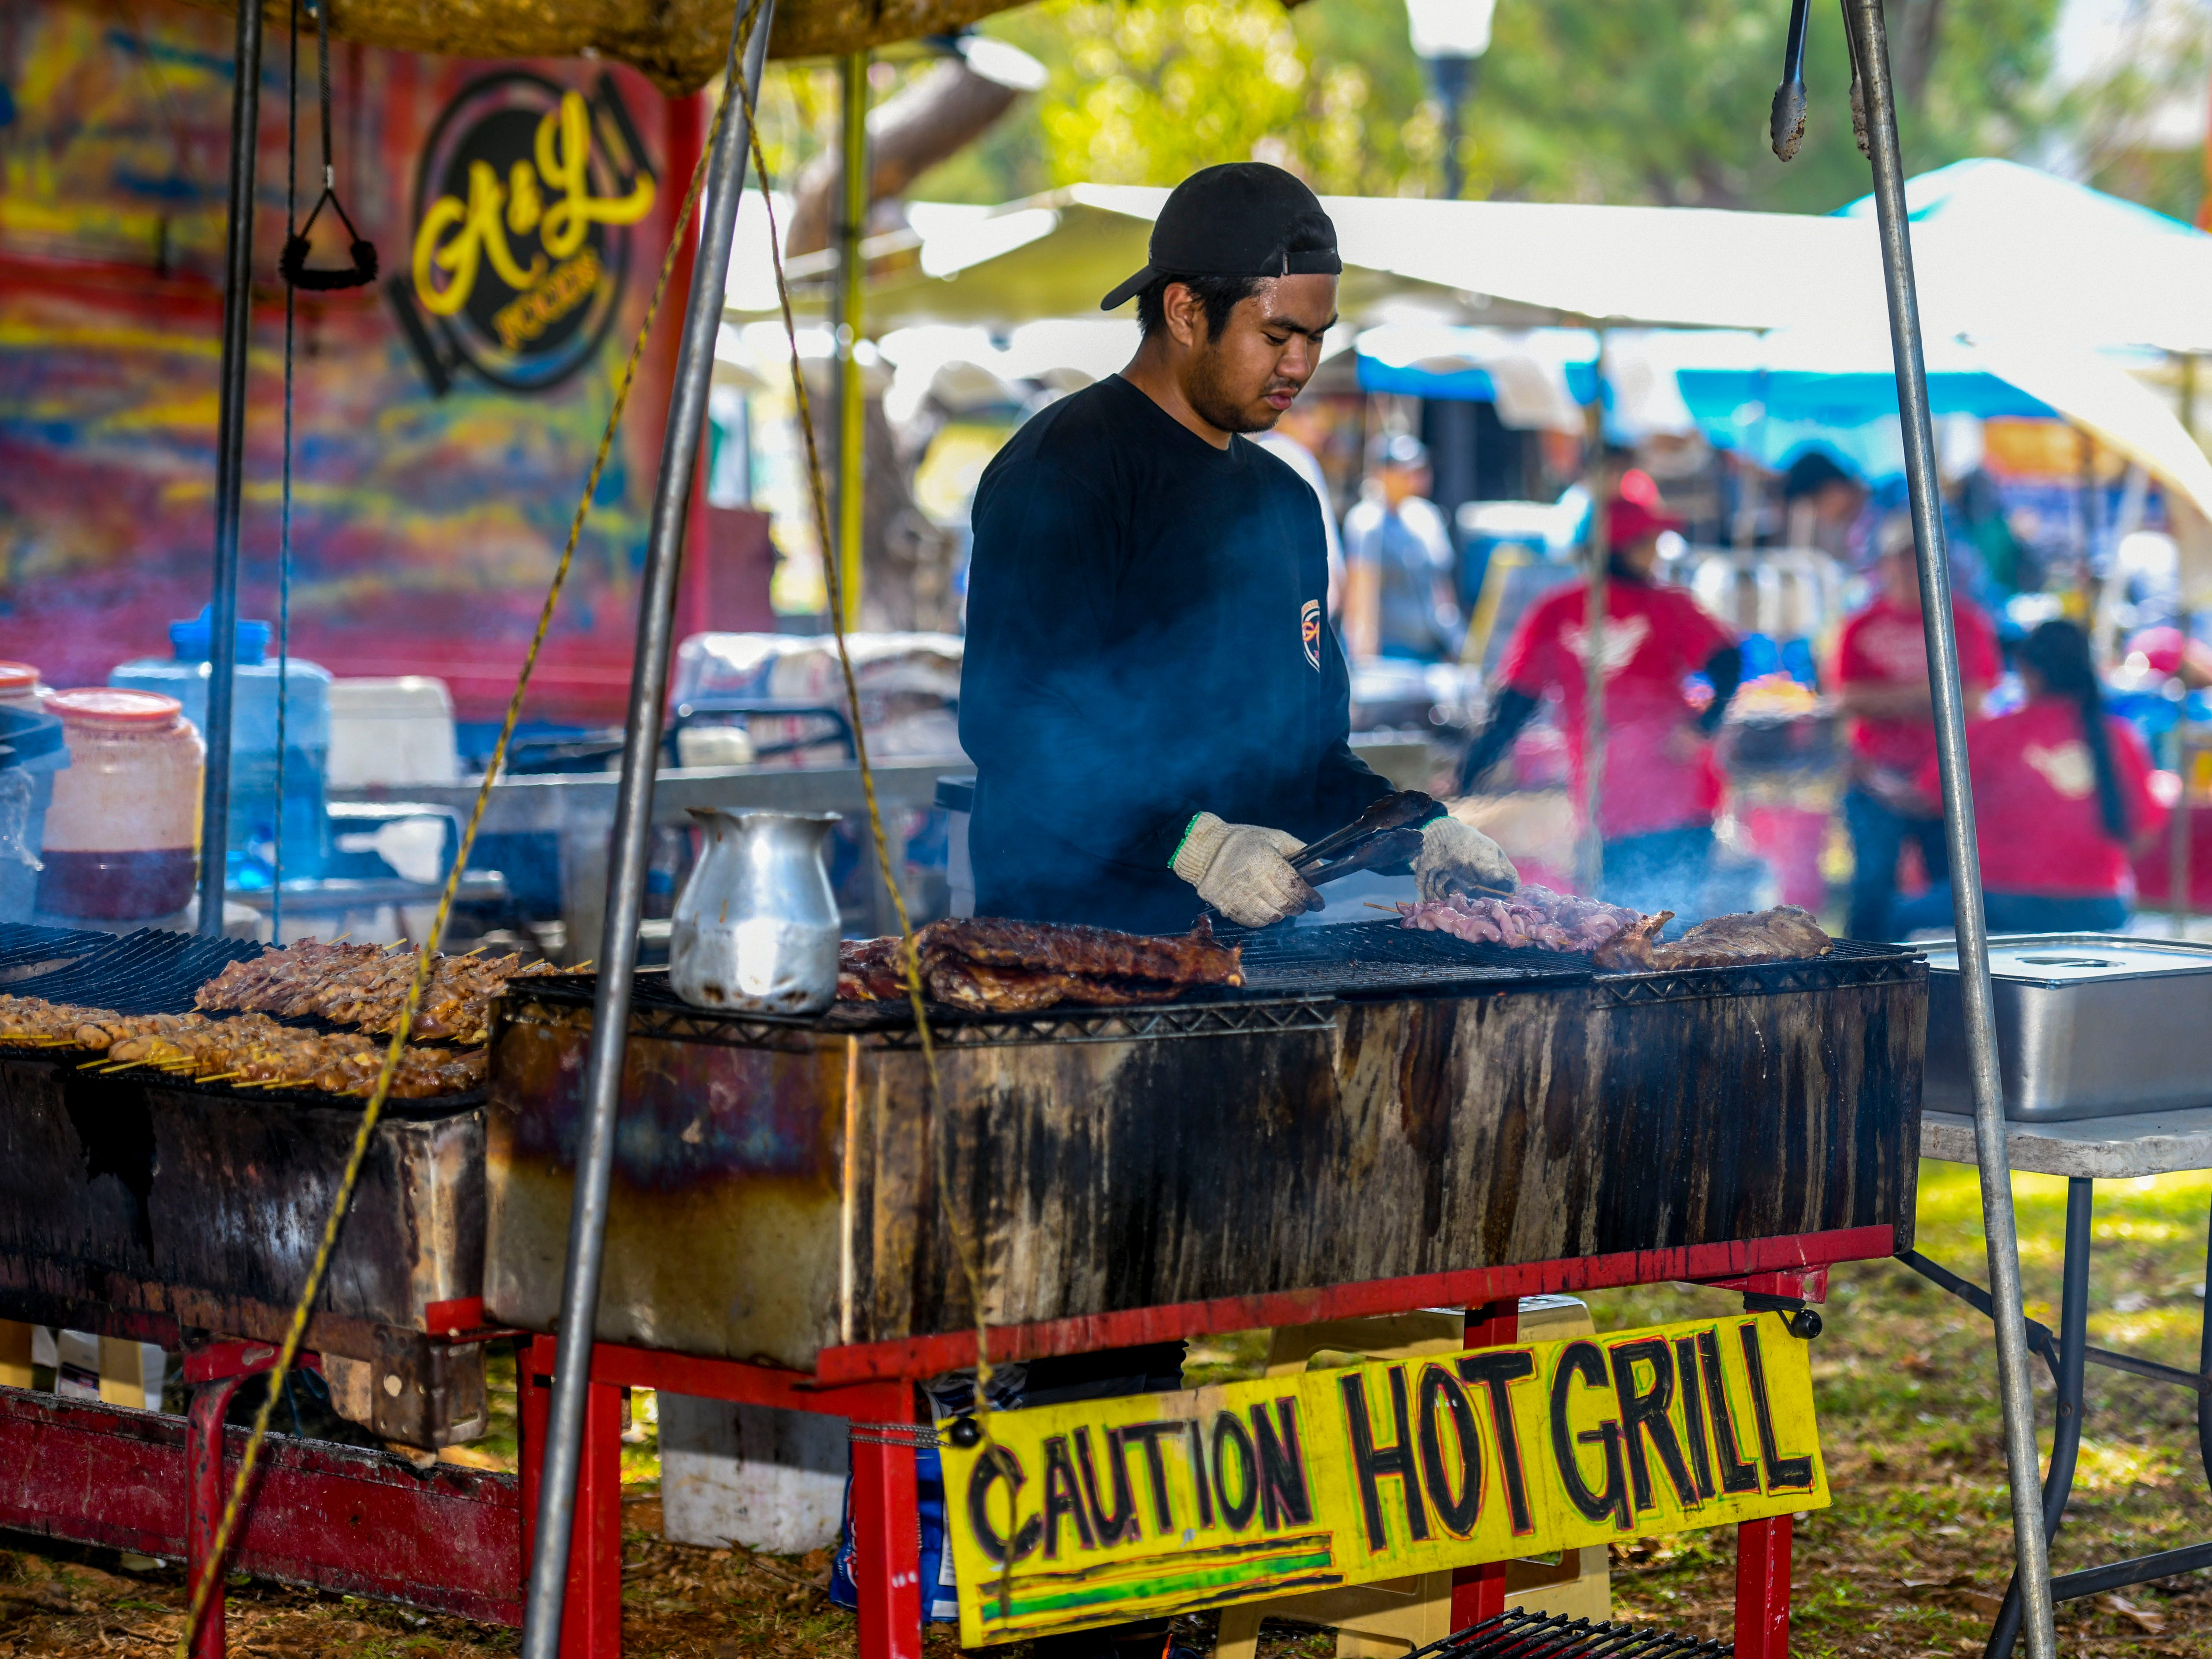 A&L Food's Paolo De Goma grills up some ribs and shishkabobs during the University of Guam's 51st Charter Day celebration in Mangilao on Tuesday, March 12, 2019.